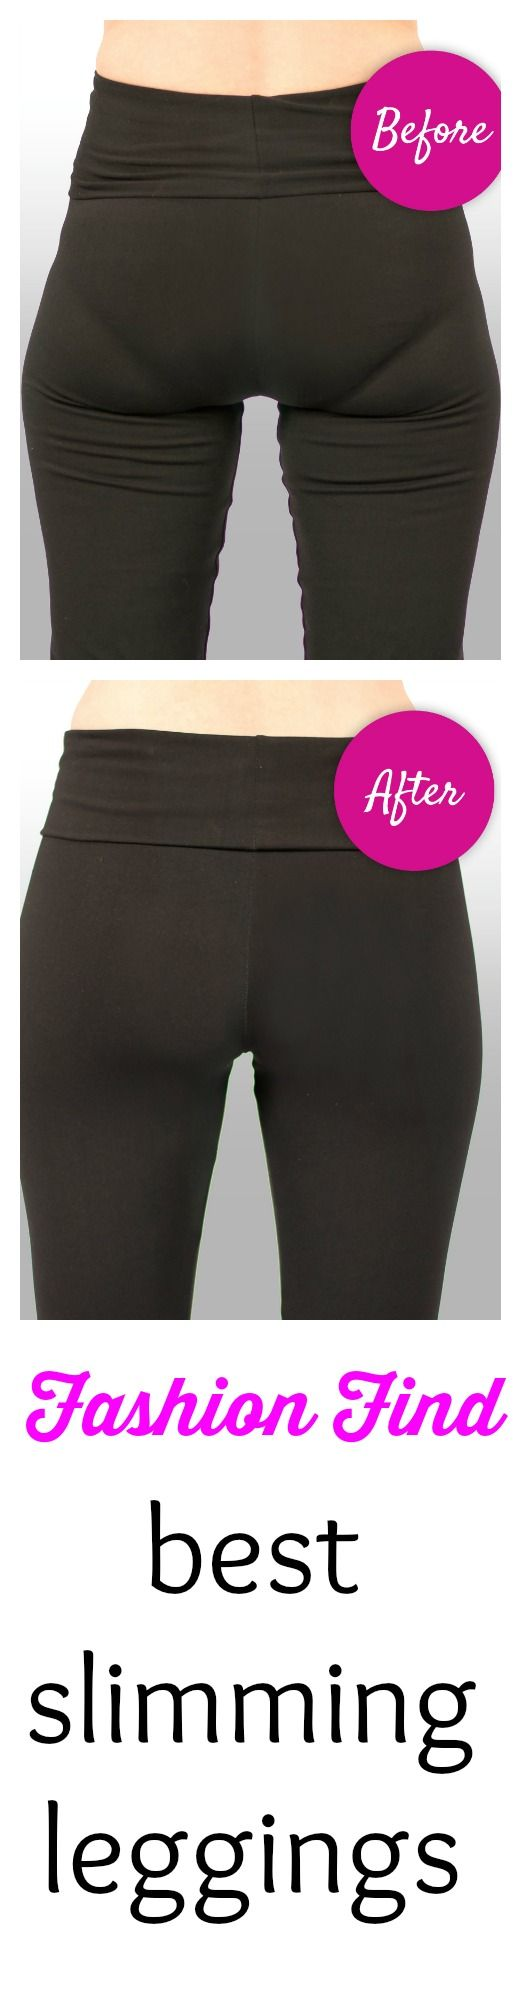 Favorite slimming leggings from Hold Your Haunches. This shapewear for women is the perfect solution to smoothing and tightening your legs and booty. A fashion find.